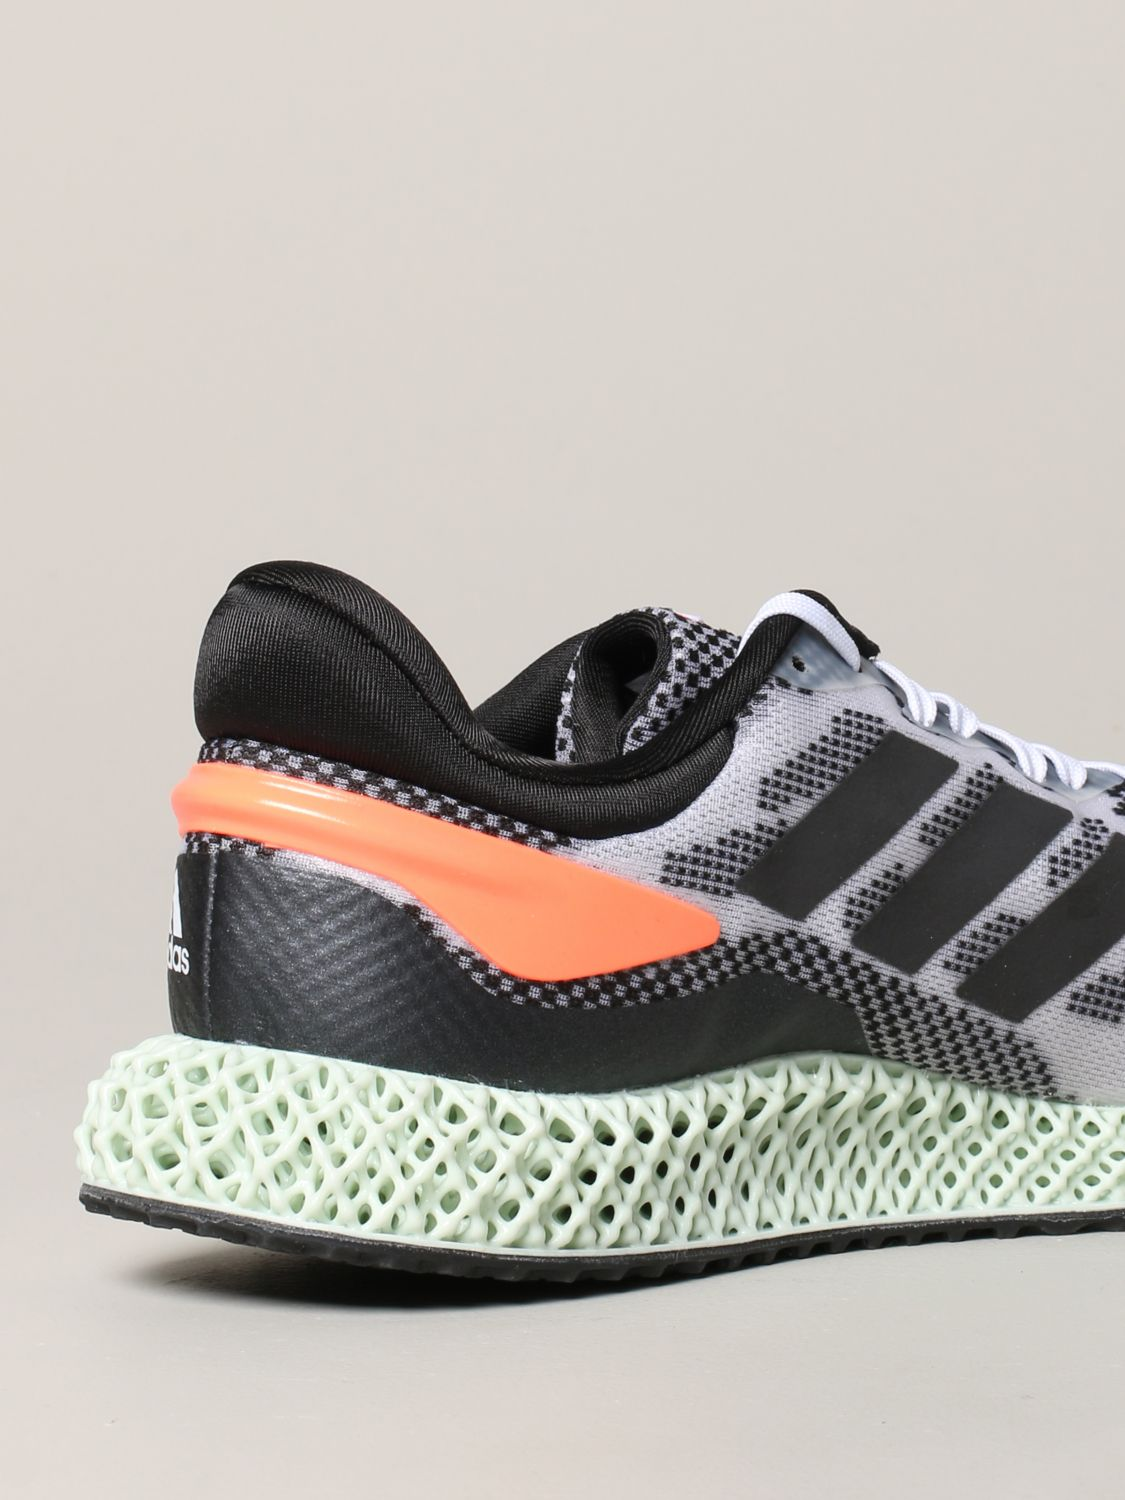 运动鞋 Adidas Originals: Adidas Originals 4d run 1.0 运动鞋 白色 5